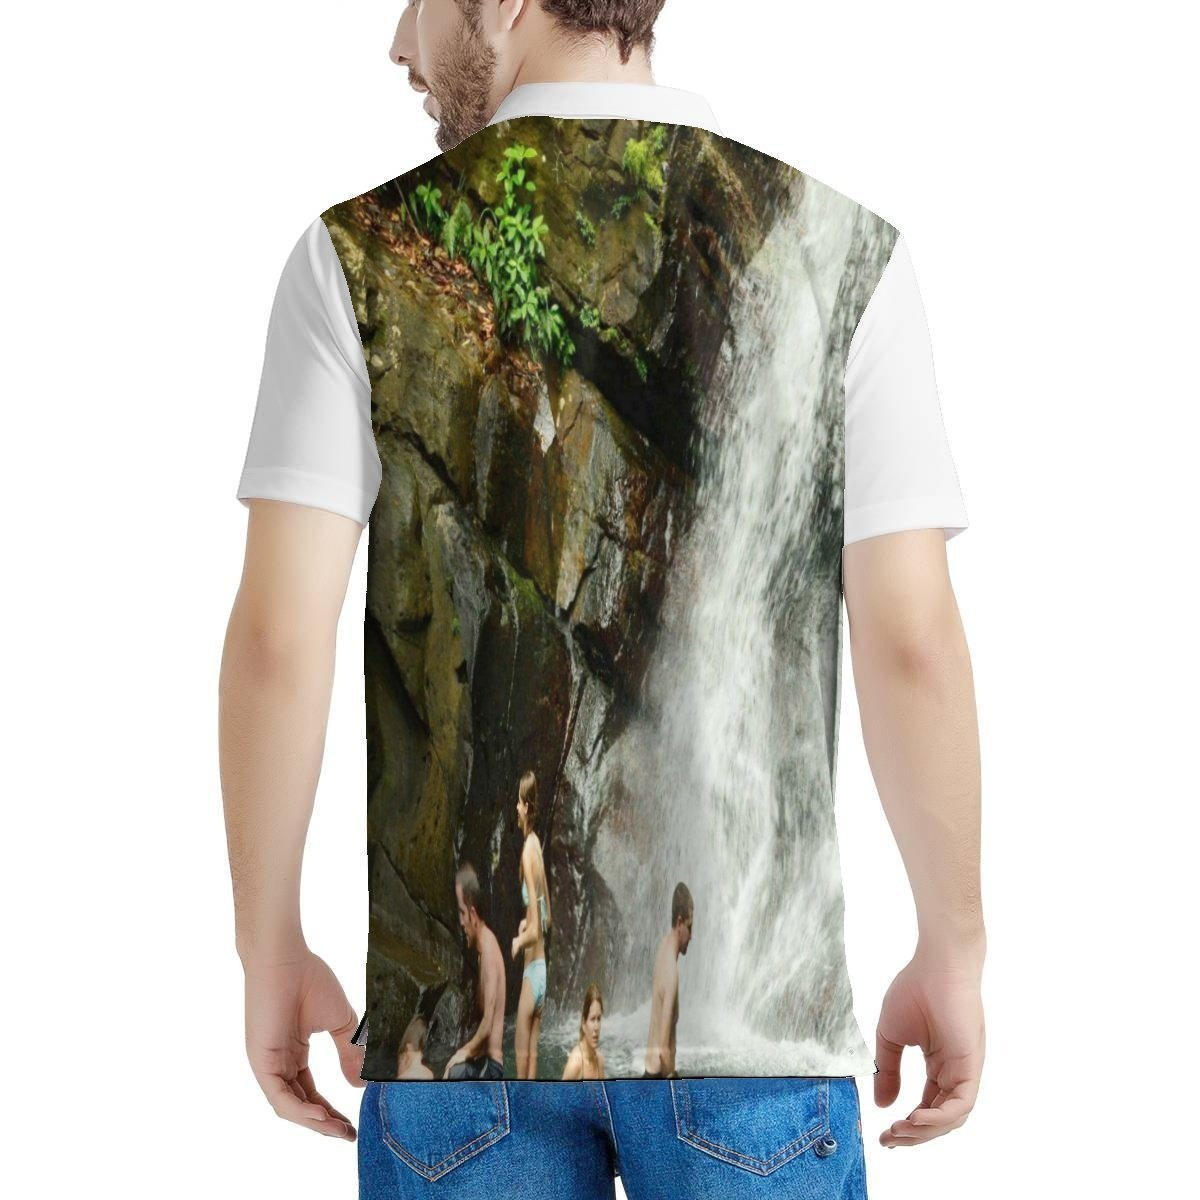 Men's All Over Print Polo Shirt - The awesome La Mina 🌊 falls in El Yunque Rainforest 🌿🌴🌿 Puerto Rico - before hurricane Maria - Yunque Store